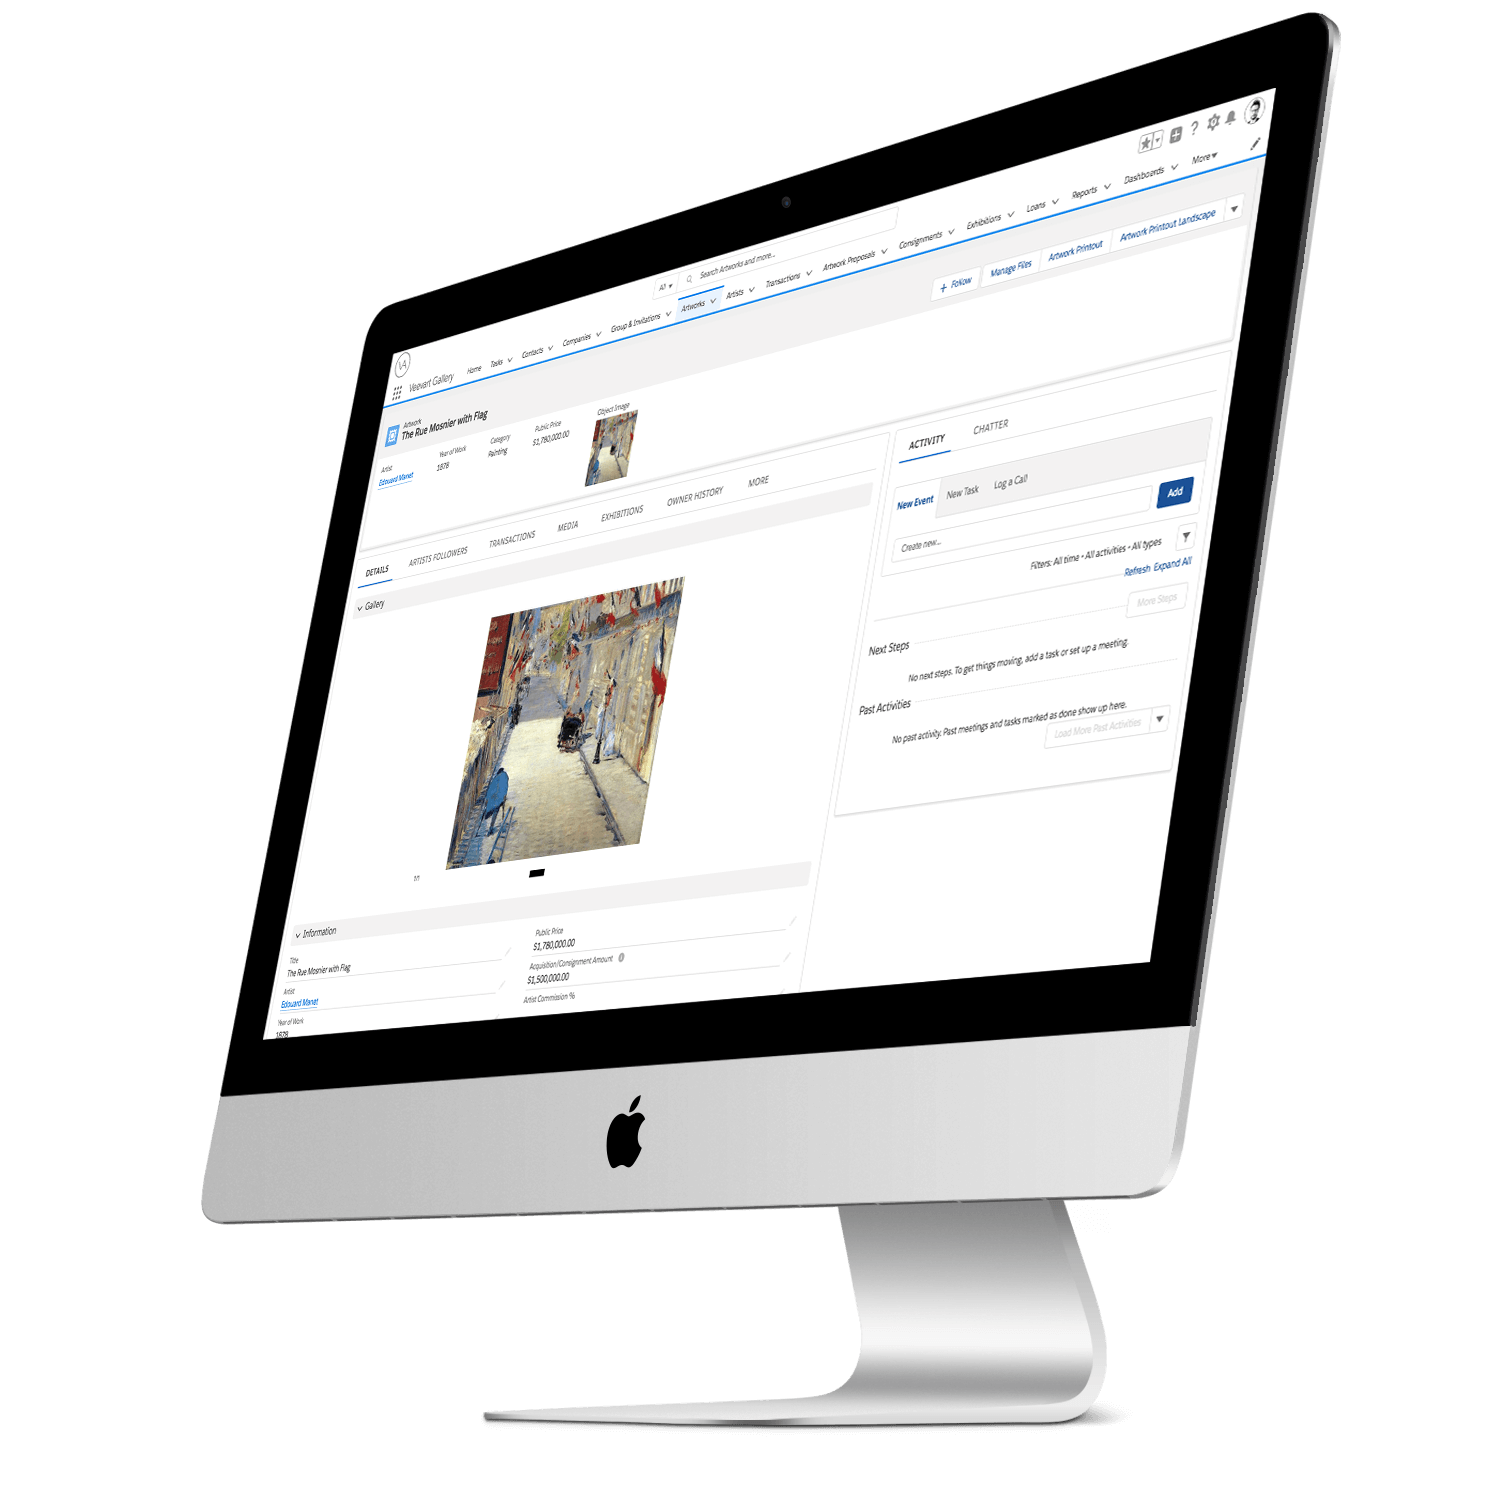 The best cloud platform to manage your gallery - Have your contacts, your sales, your email, inventory, exhibition preparation, and more in a single app. Your Art Gallery is at your fingertips